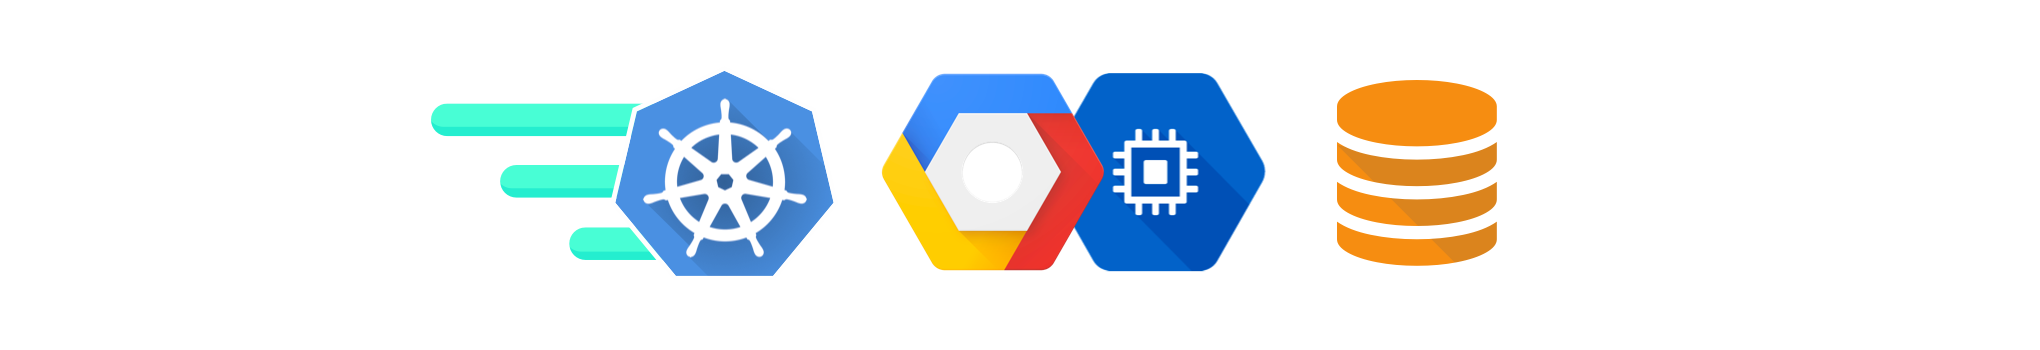 Kubernetes 1 4, Google Compute, AWS Volumes — All Secured with SSL